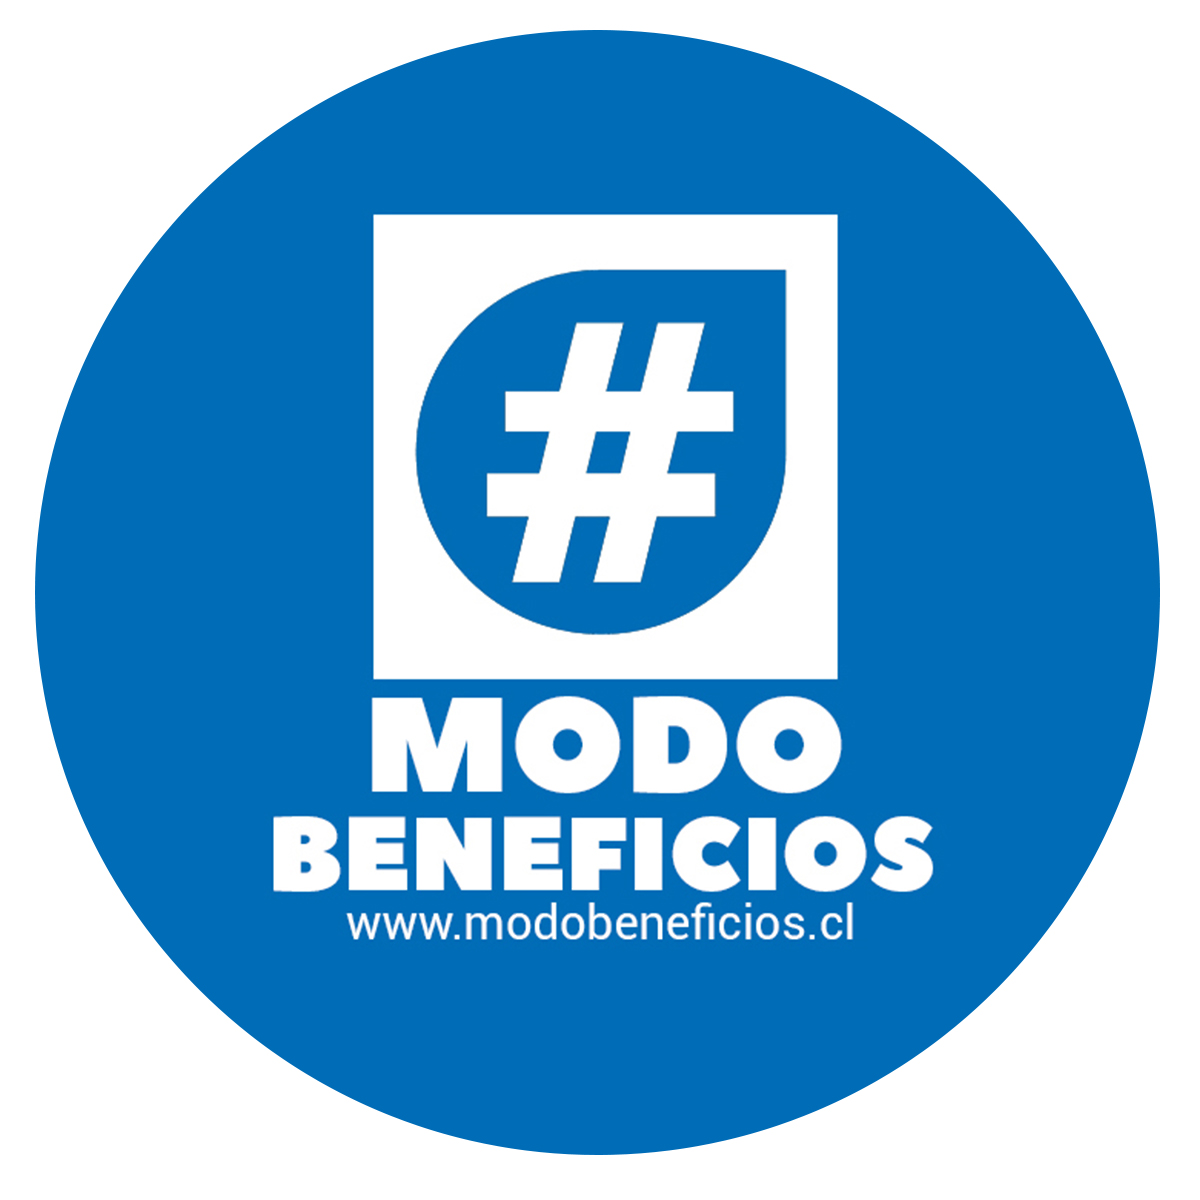 modobeneficios-redondo